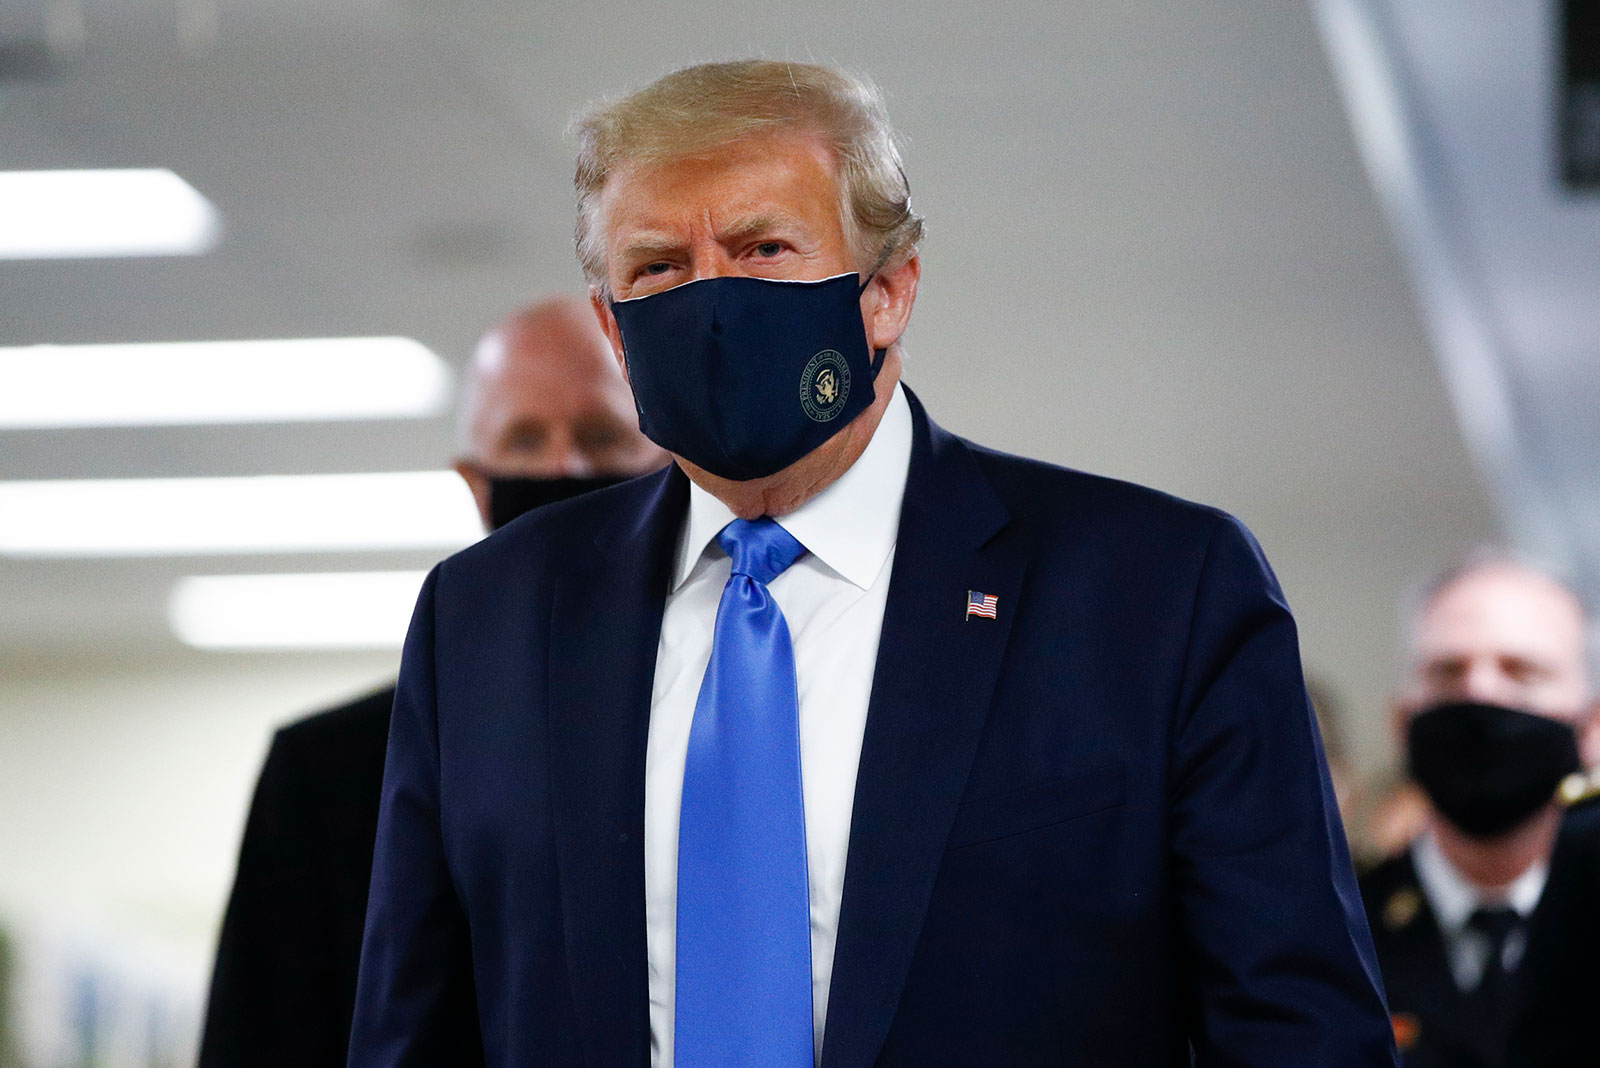 President Trump wears a mask during a visit to Walter Reed National Military Medical Center on Saturday.